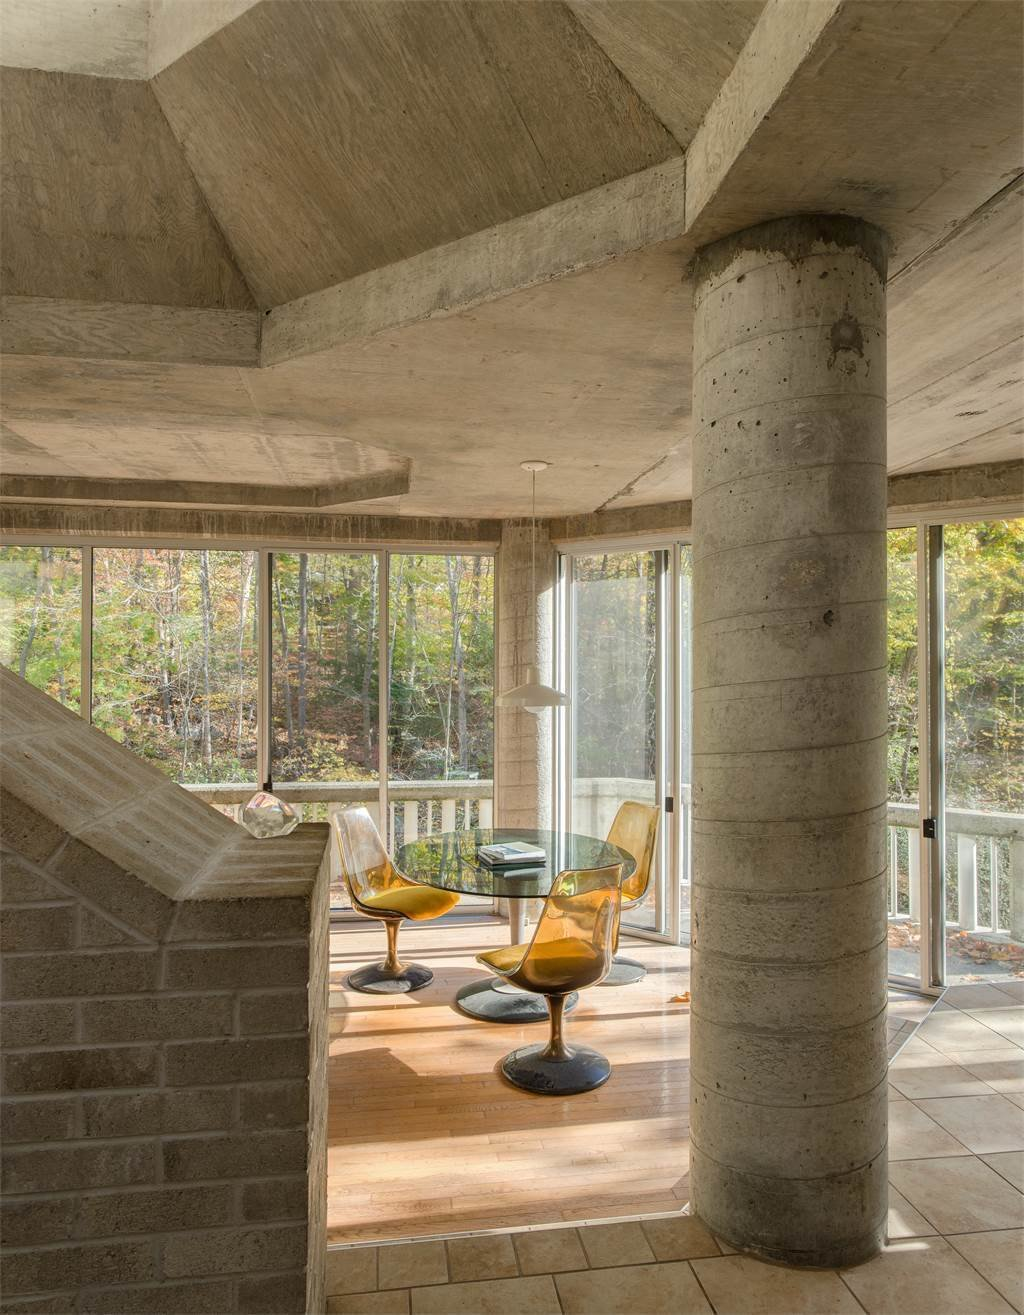 Pillars and other raw construction elements are exposed throughout the space. The One-of-a-Kind Home of the Late Architect John Black Lee Drops to $750K - Photo 9 of 11